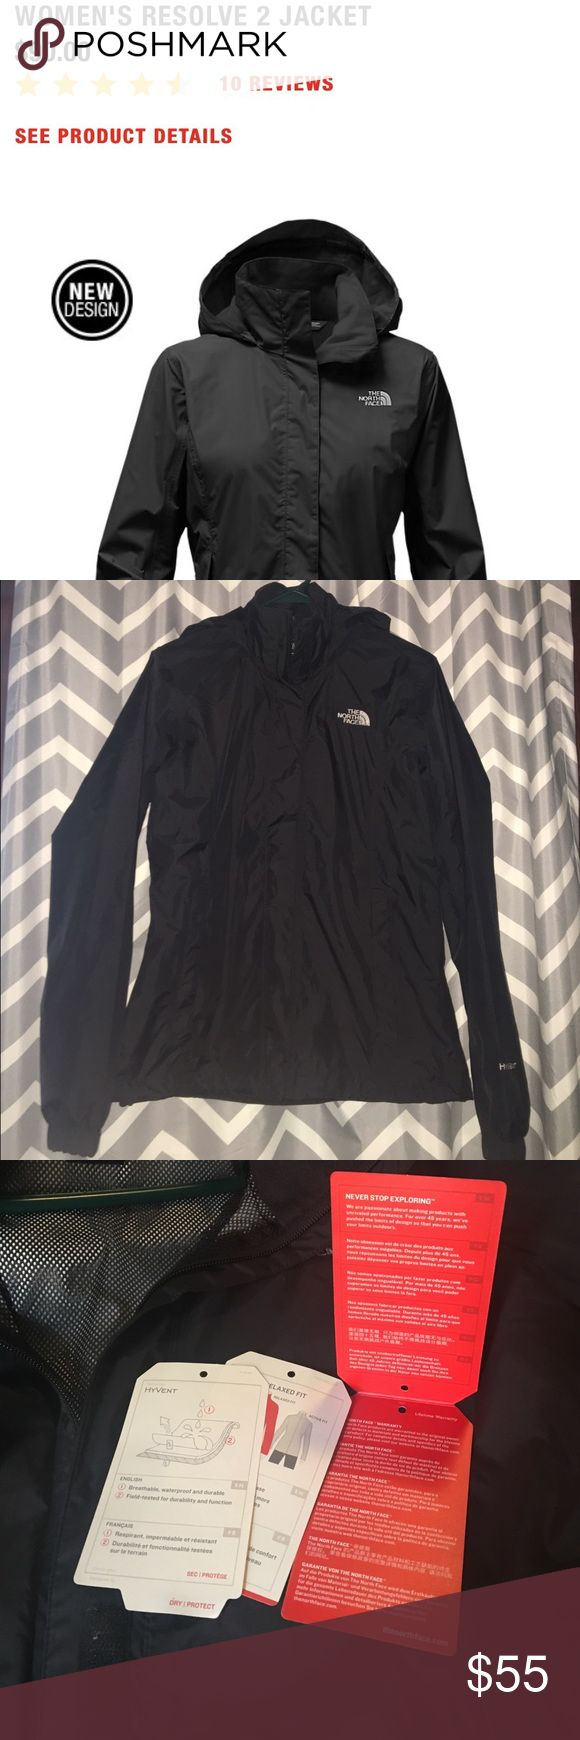 NWT! Authentic North Face hooded rain/wind jacket All black jacket w/ hood that can be folded in collar. Light weight, breathable, waterproof & windproof! Removed tags to wear to a game but it stopped raining so I never wore! Tags included! The North Face Jackets & Coats Utility Jackets